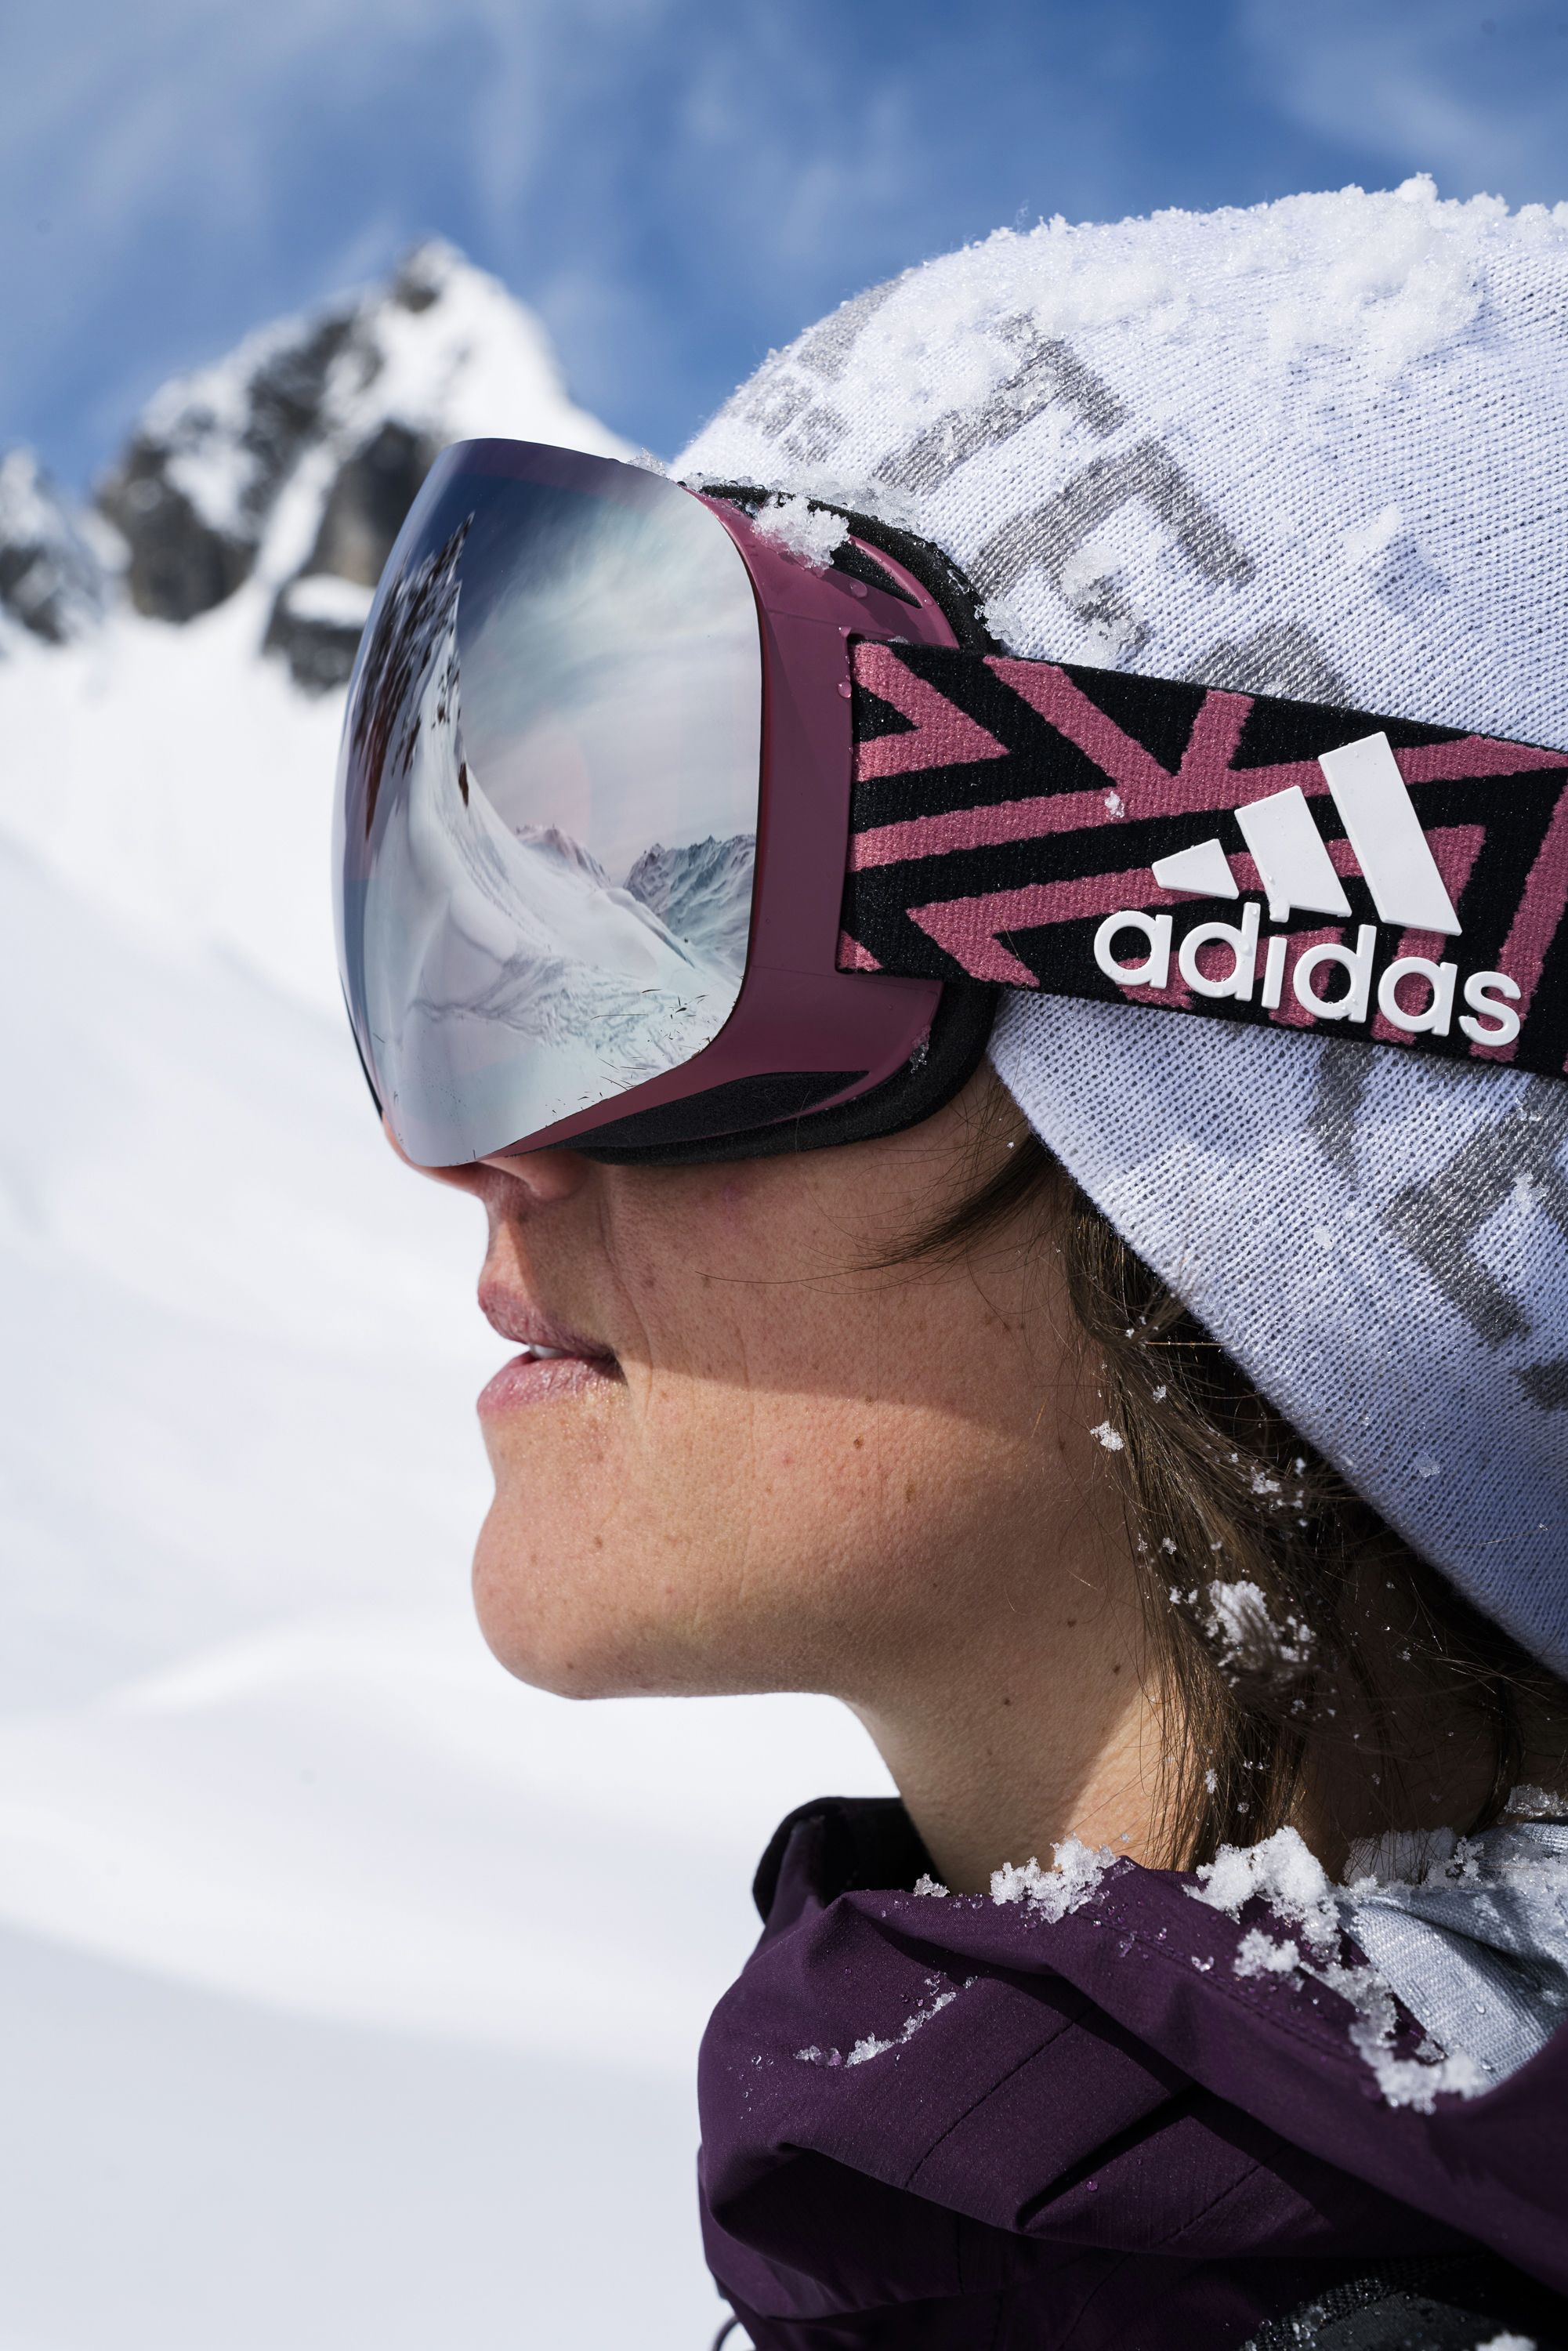 4d451d29e adidas Sport eyewear - backland spherical ski goggles | Winter ski ...